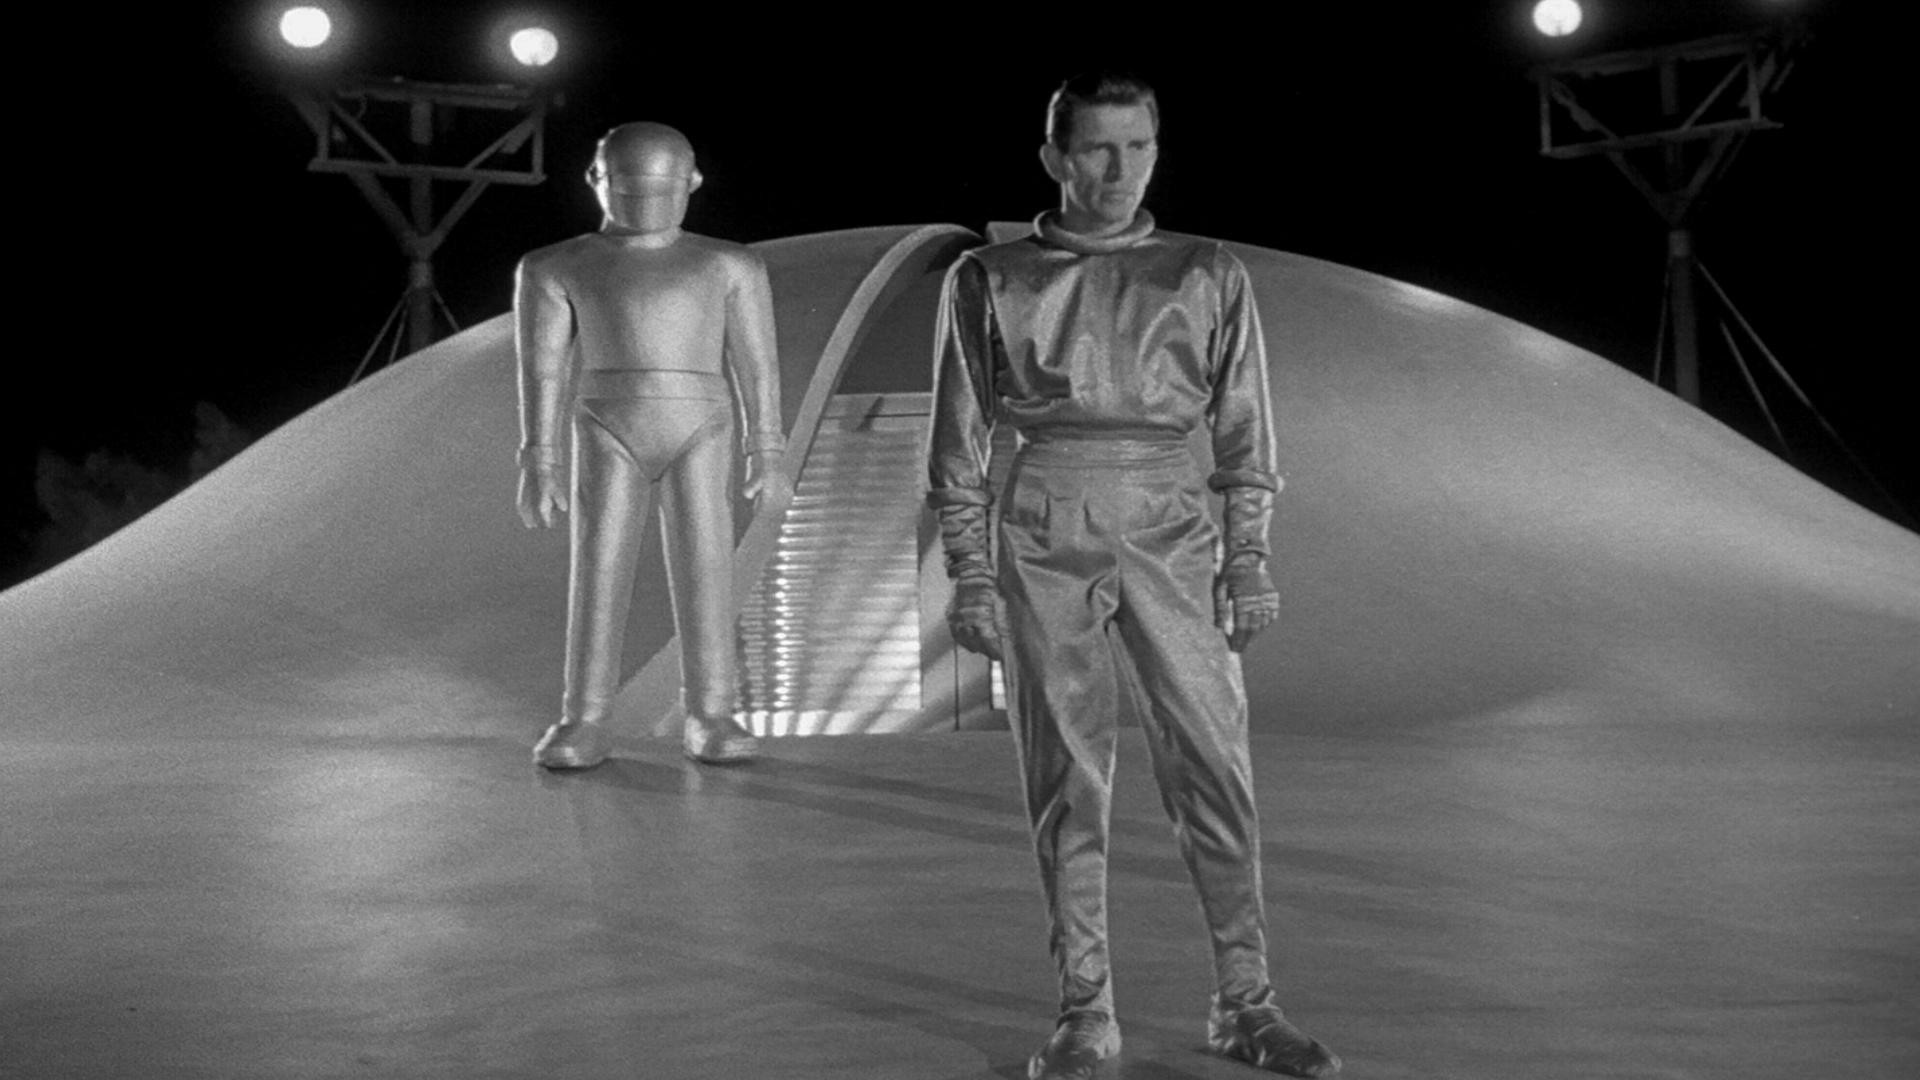 Classics like The Day The Earth Stood Still will feature in the inaugural calendar.